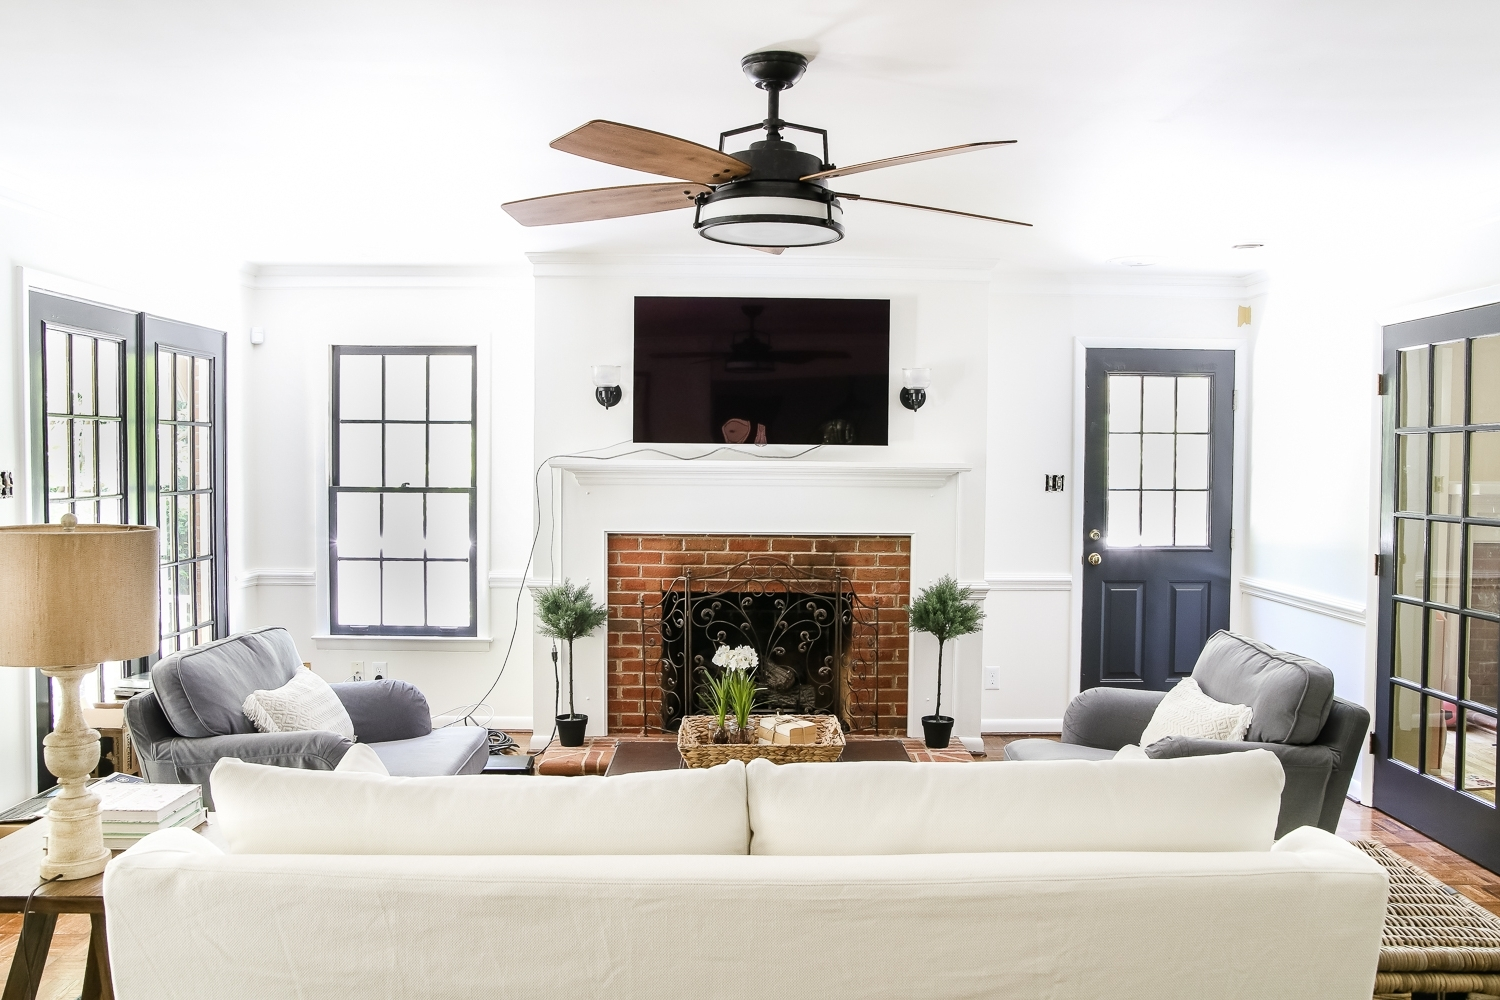 Living Room Update: Ceiling Fan Swap – Bless'er House Within Current Outdoor Ceiling Fans Under $ (View 18 of 20)